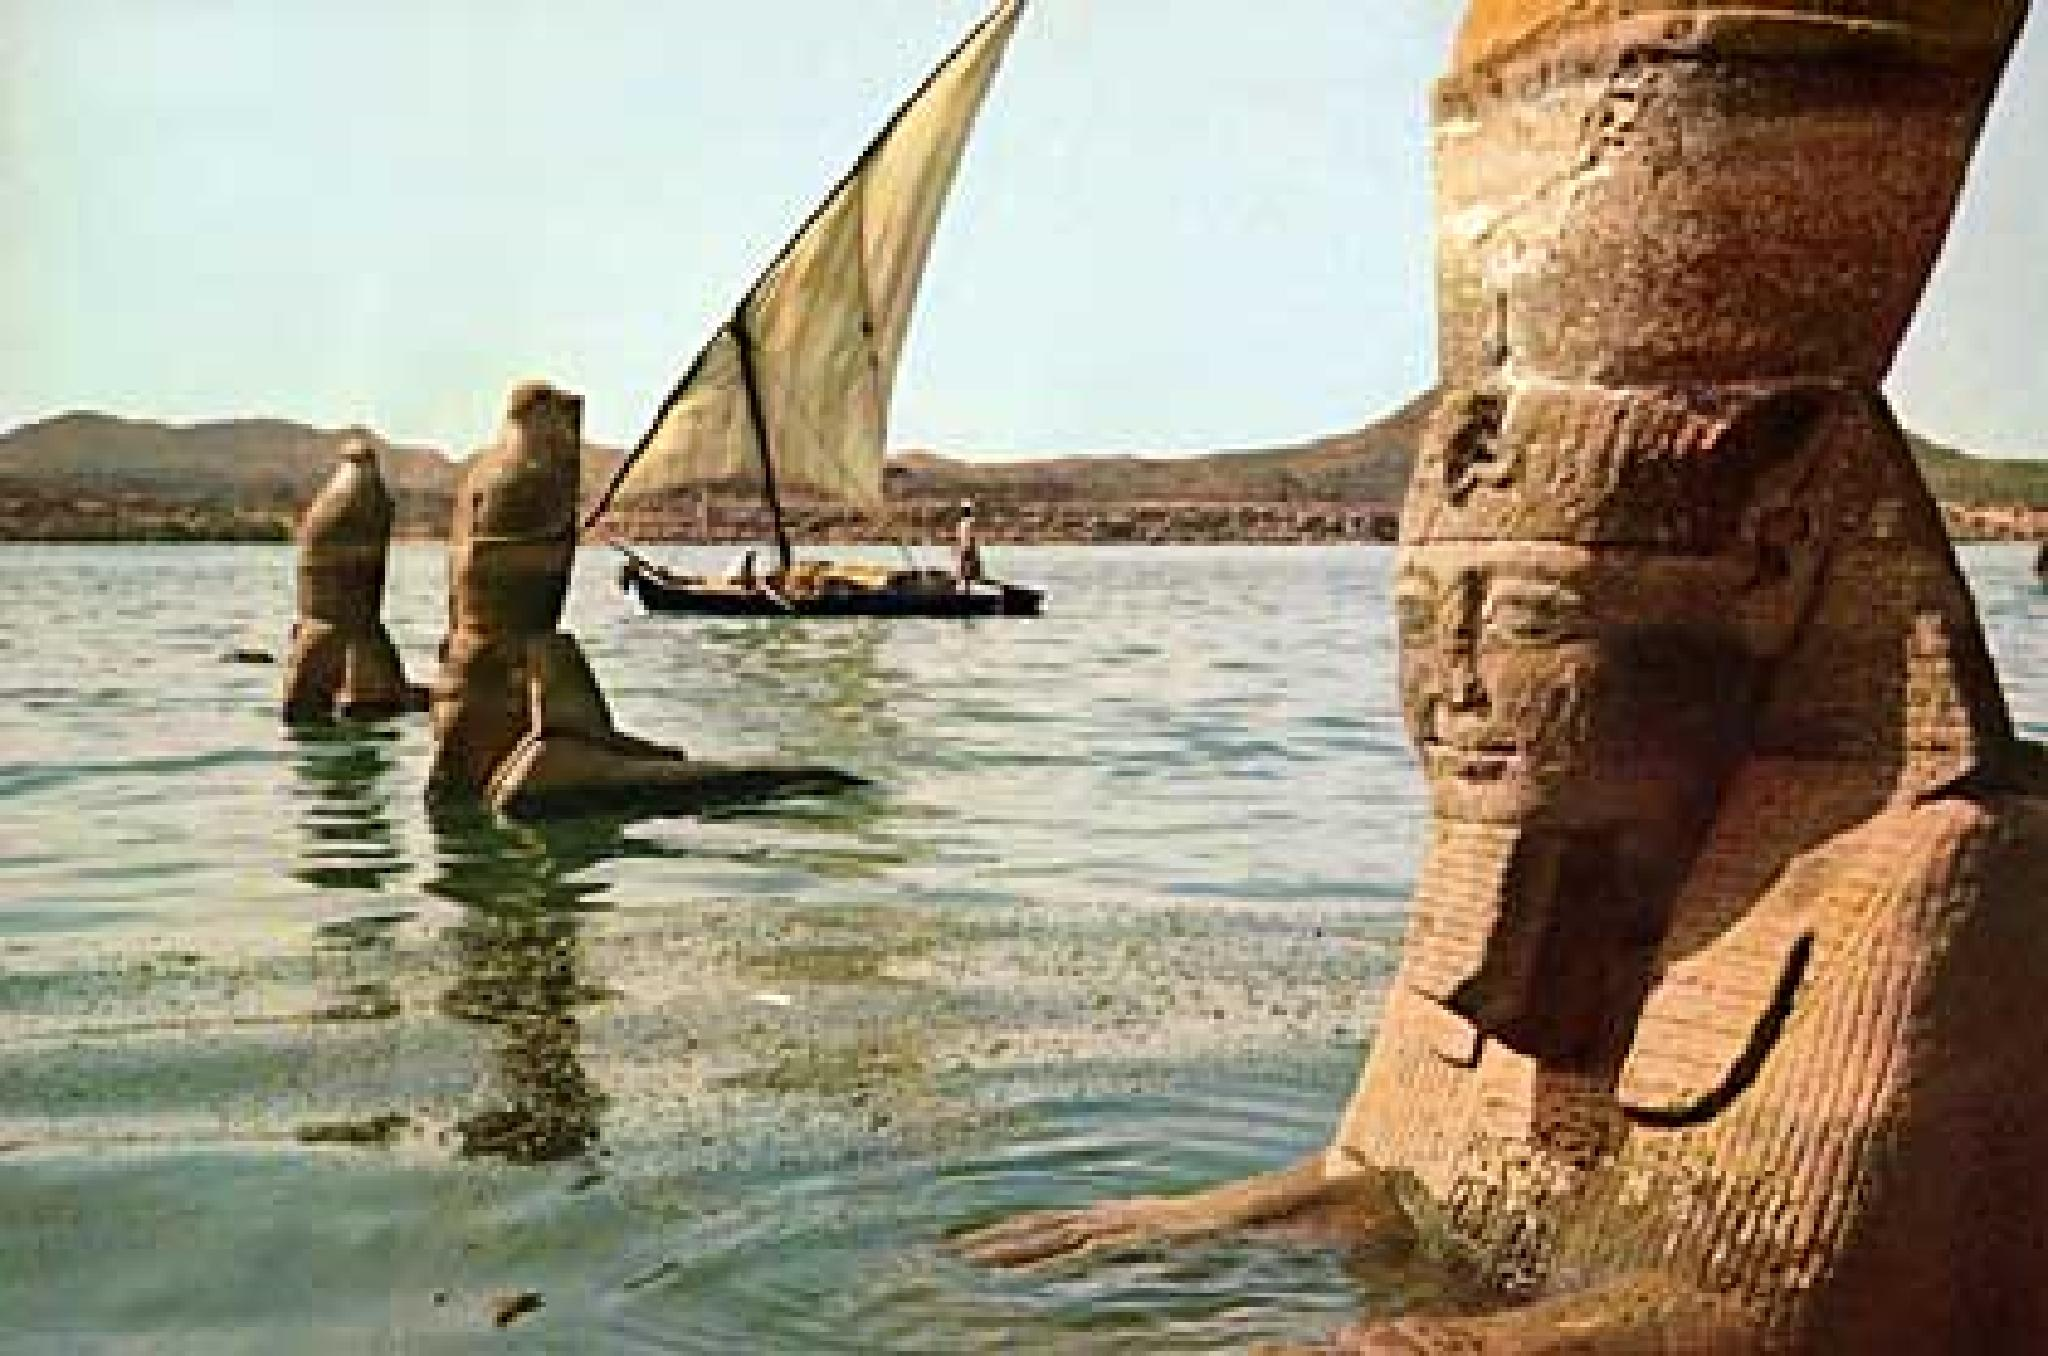 Aswan Souk Aswan and Lake Nasser, Egypt Travel Blog | Egypt Travel Guide | All what you need to know ...